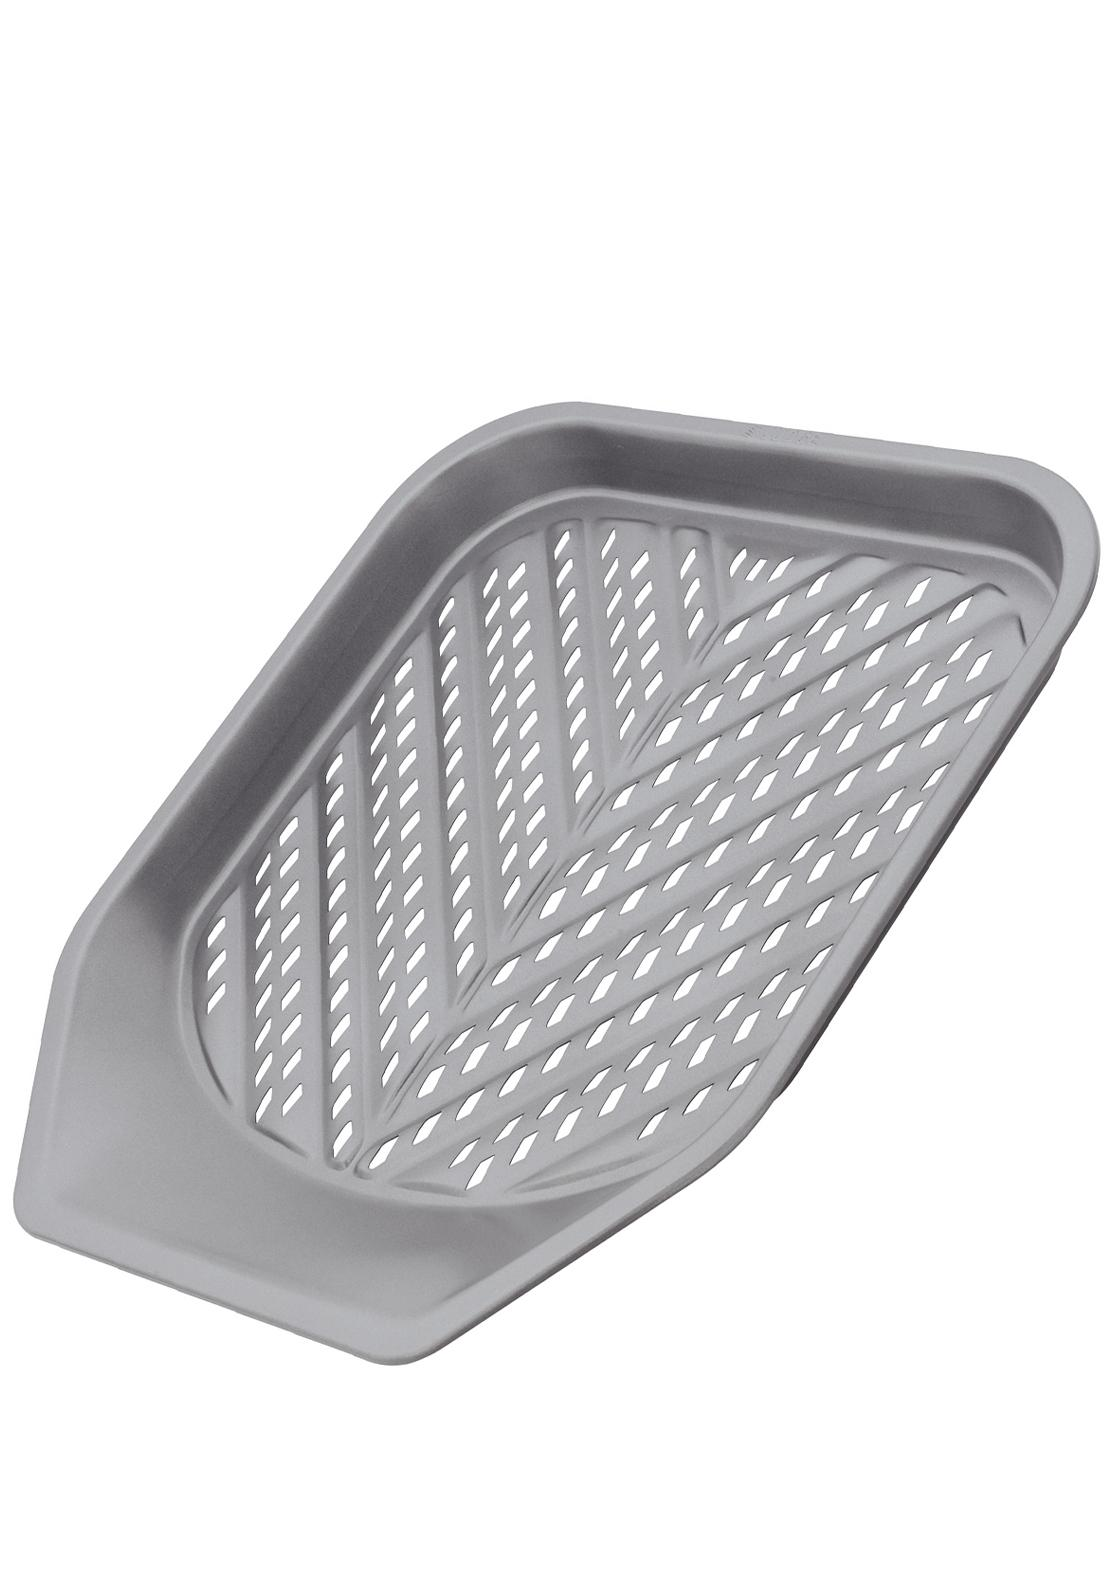 Judge Bakeware Vented Chip Tray